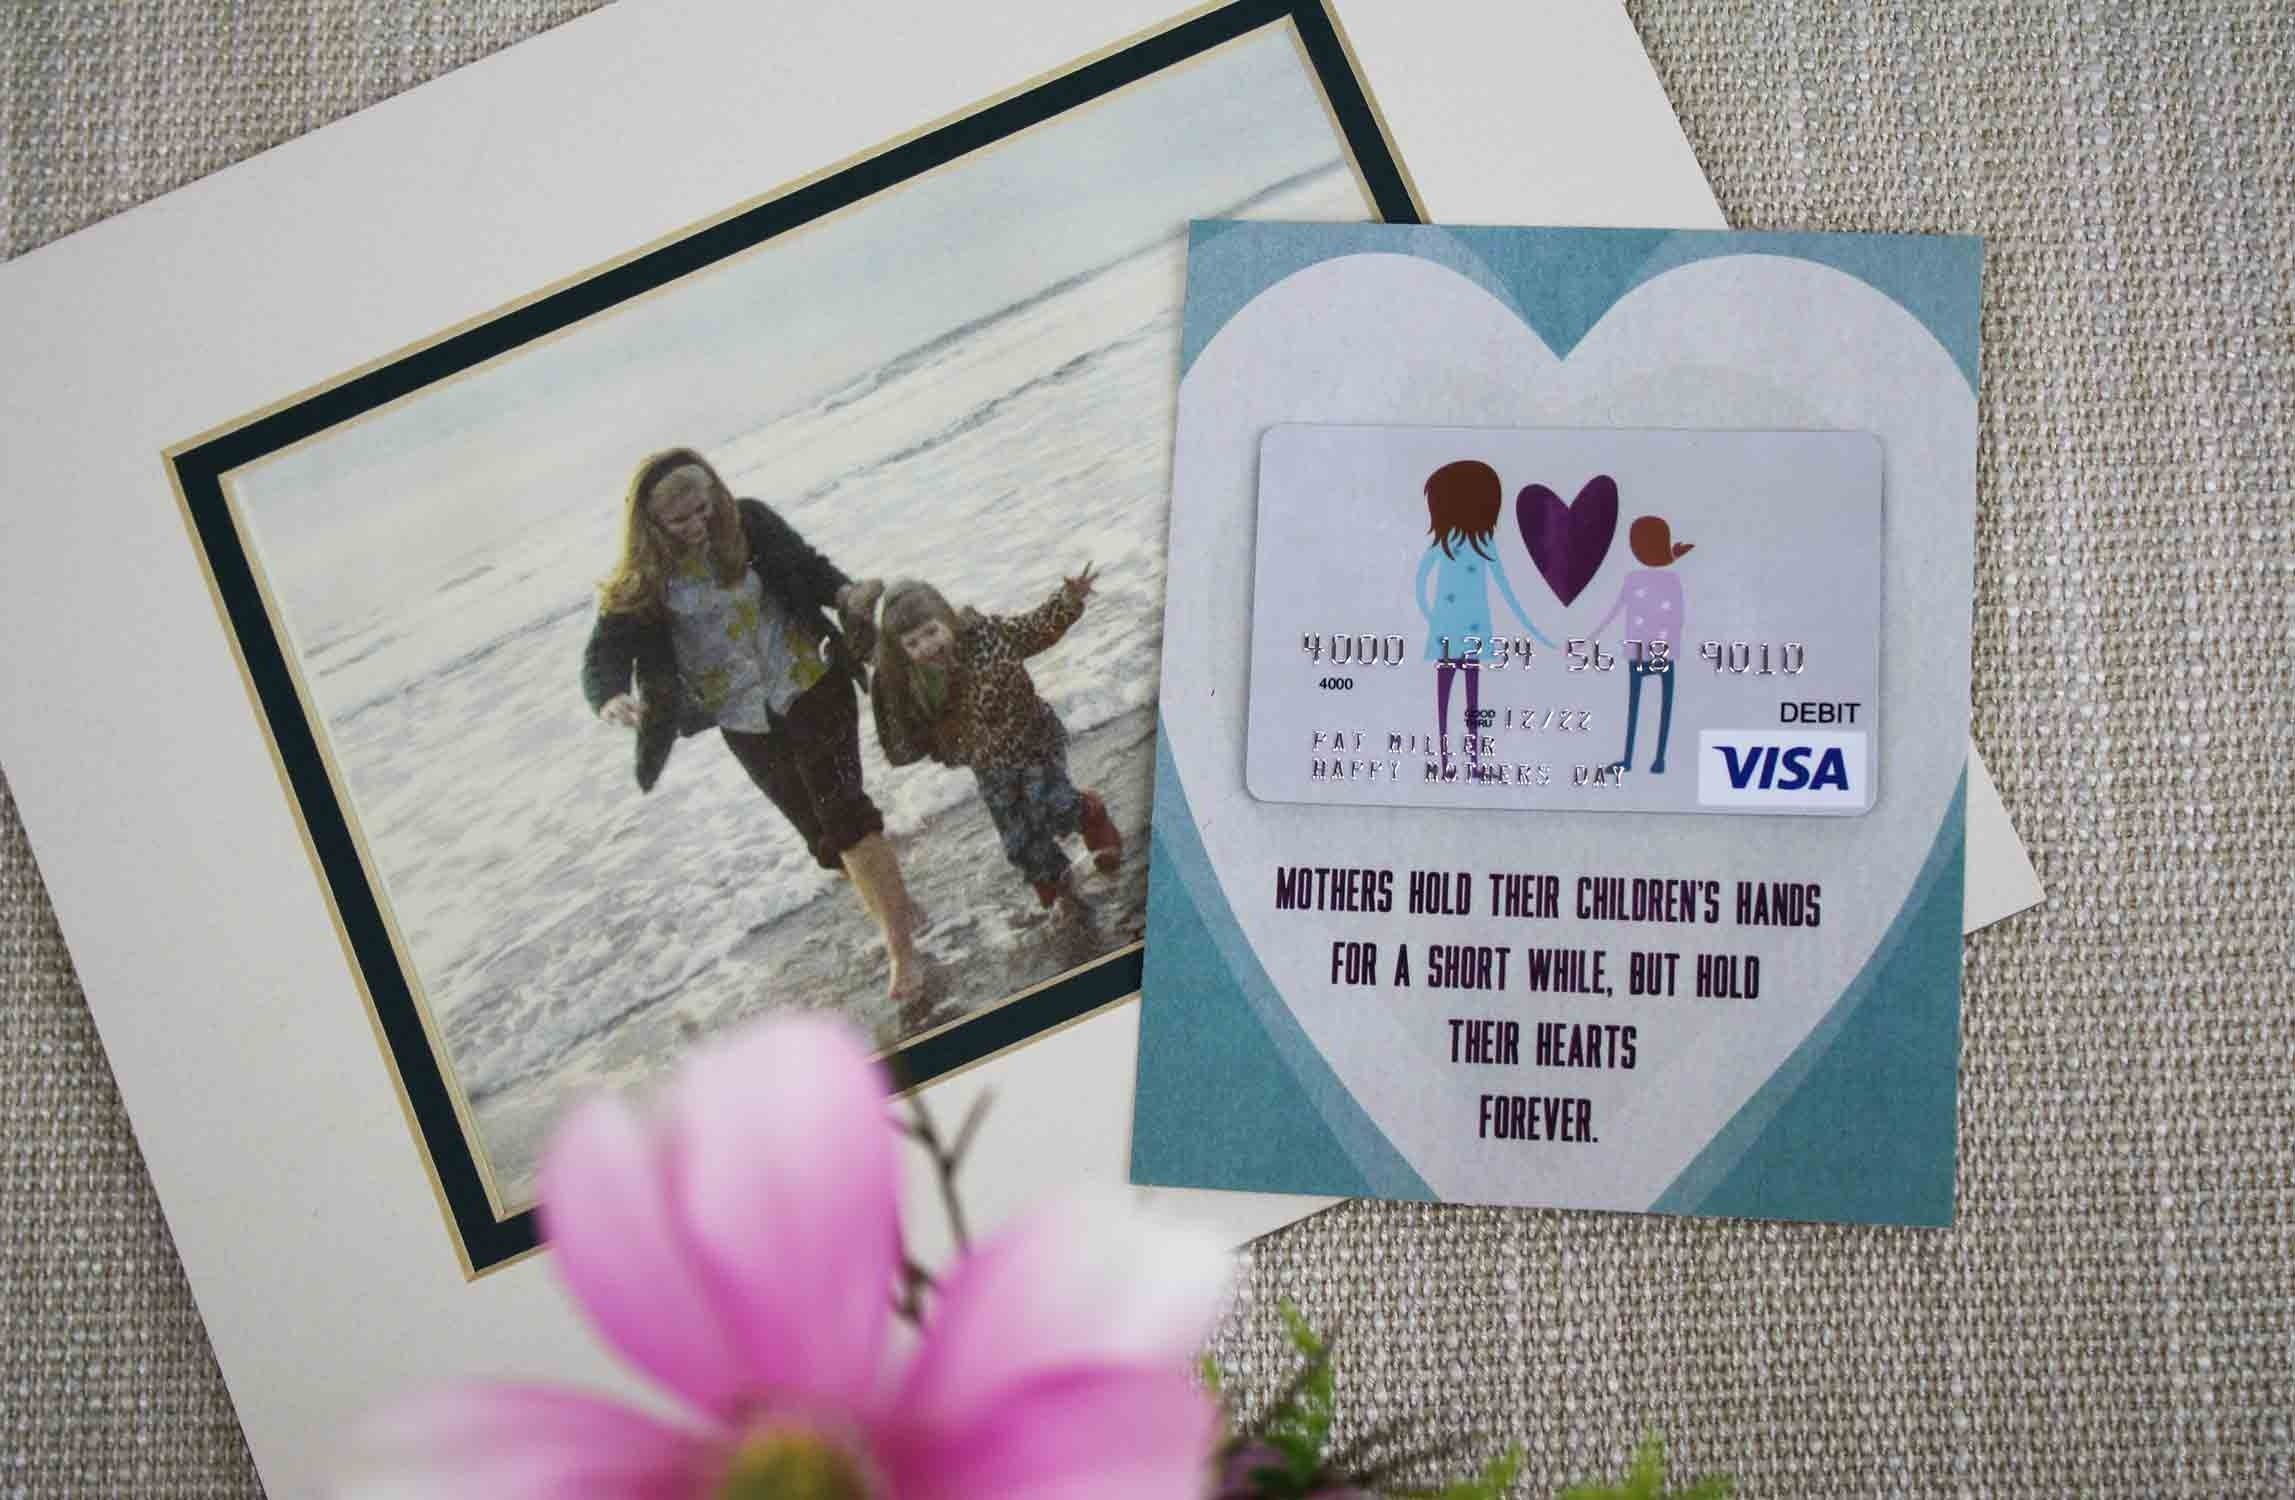 free mother's day gift card holder: a child's hand | gcg